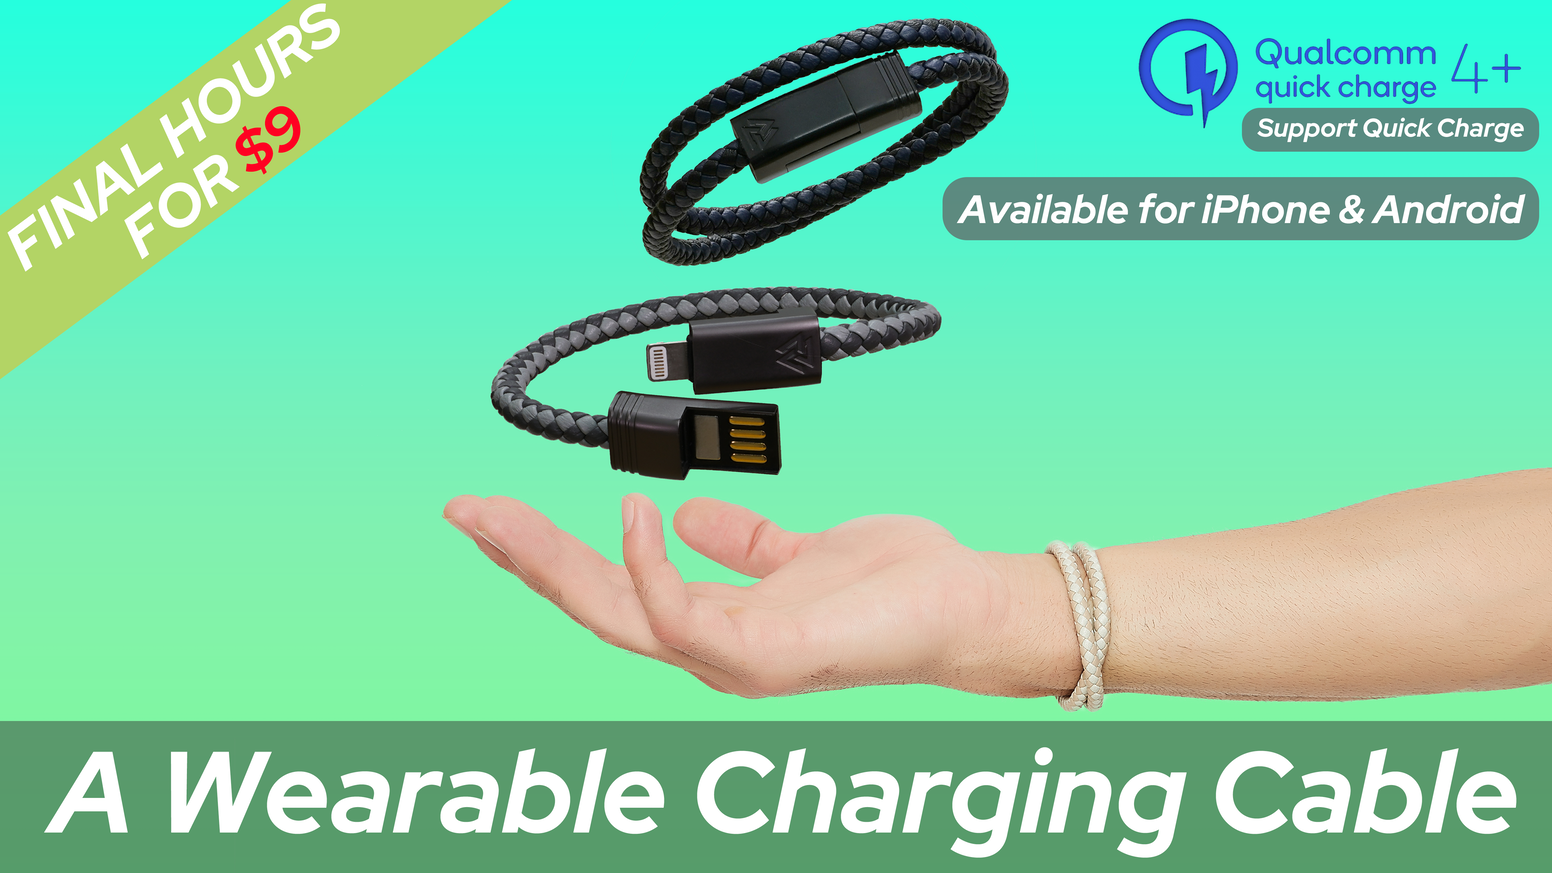 Kickstarter's Most Popular Charging CabIe Bracelet // Support QC 4.0 // Up To 3.0A Fast Charging // Always On the Go!